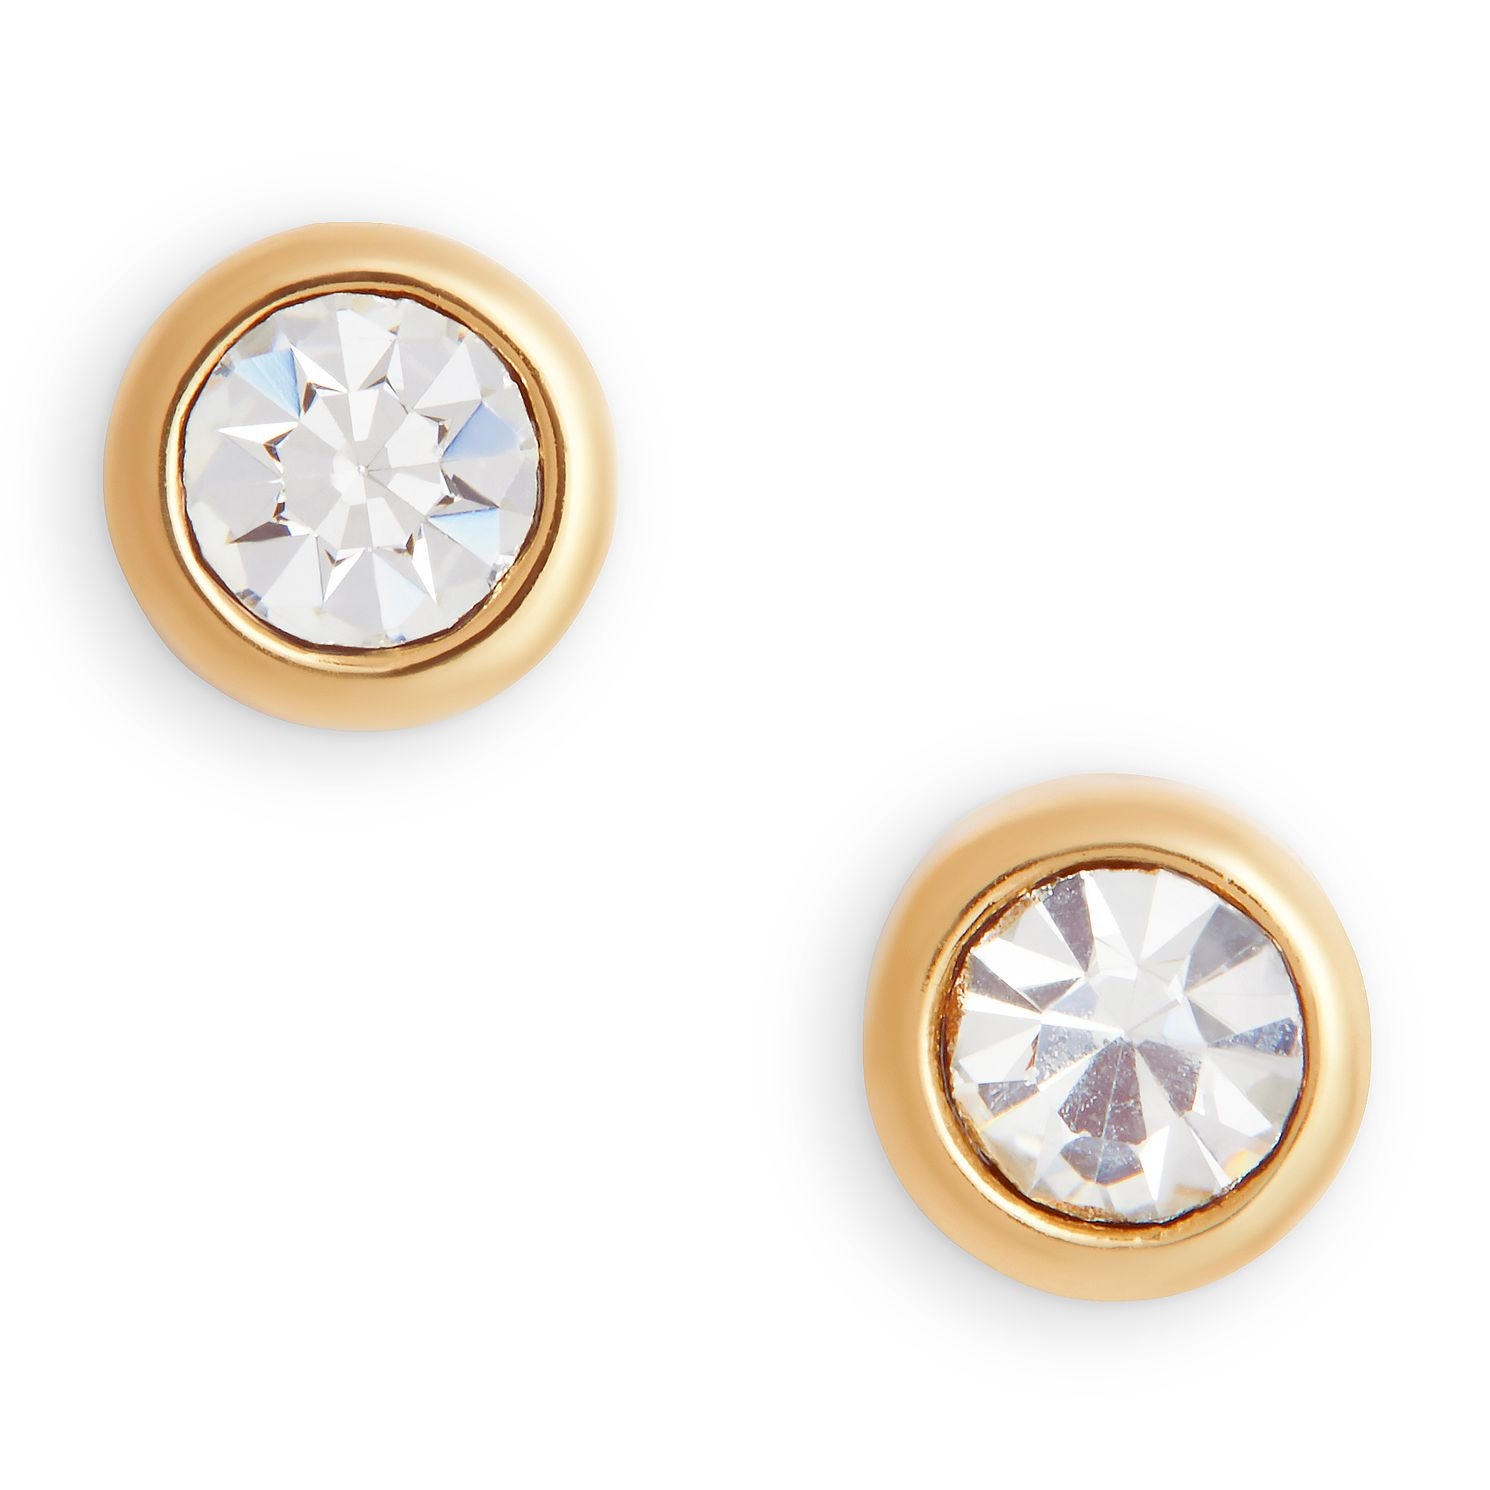 Olivia Burton Bejewelled Gold Tone Crystal Stud Earrings - Product number 5247322